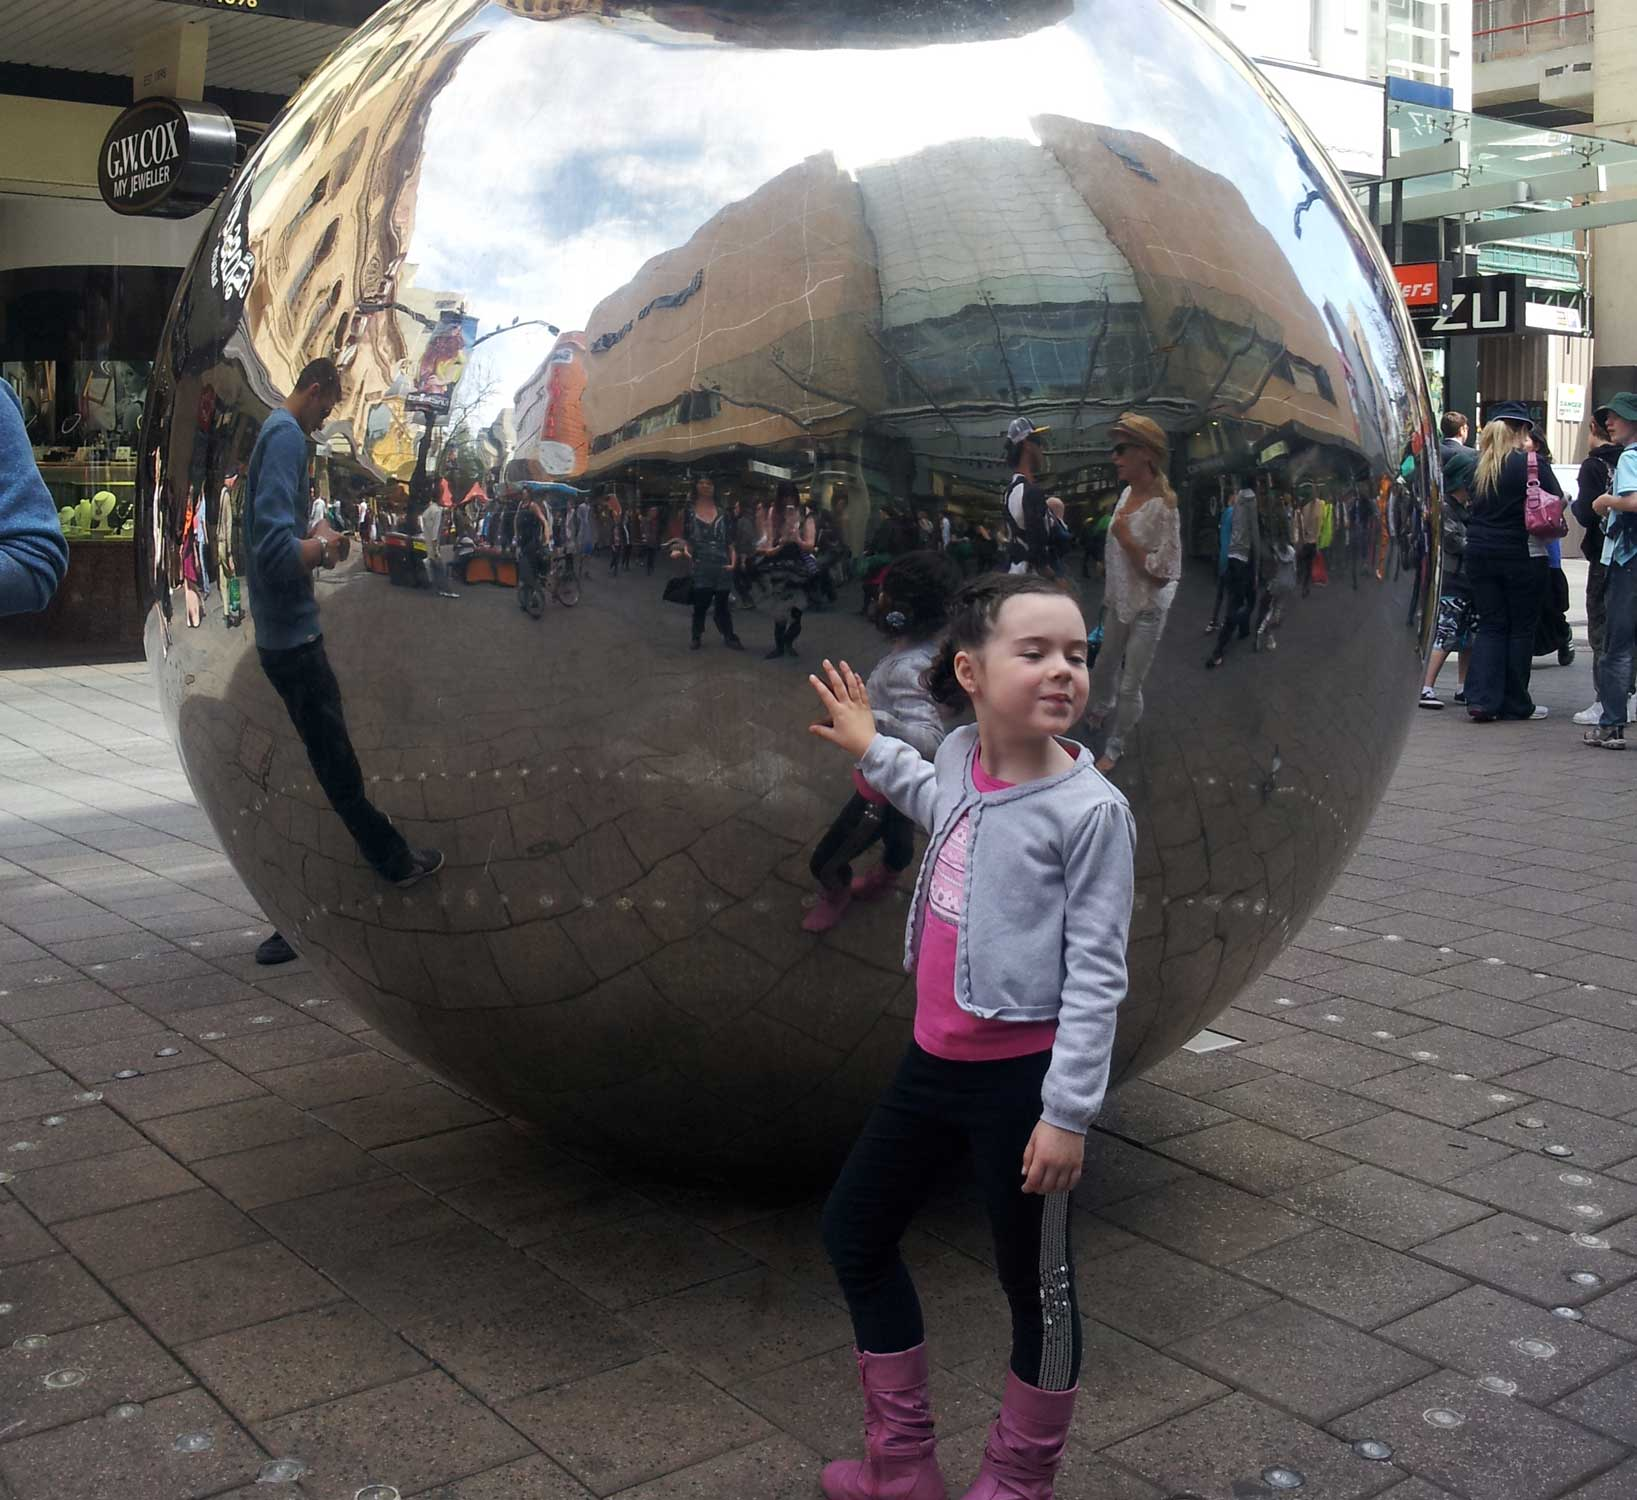 Tookii things to do with kids Rundle mall one of the outdoor activities for kids